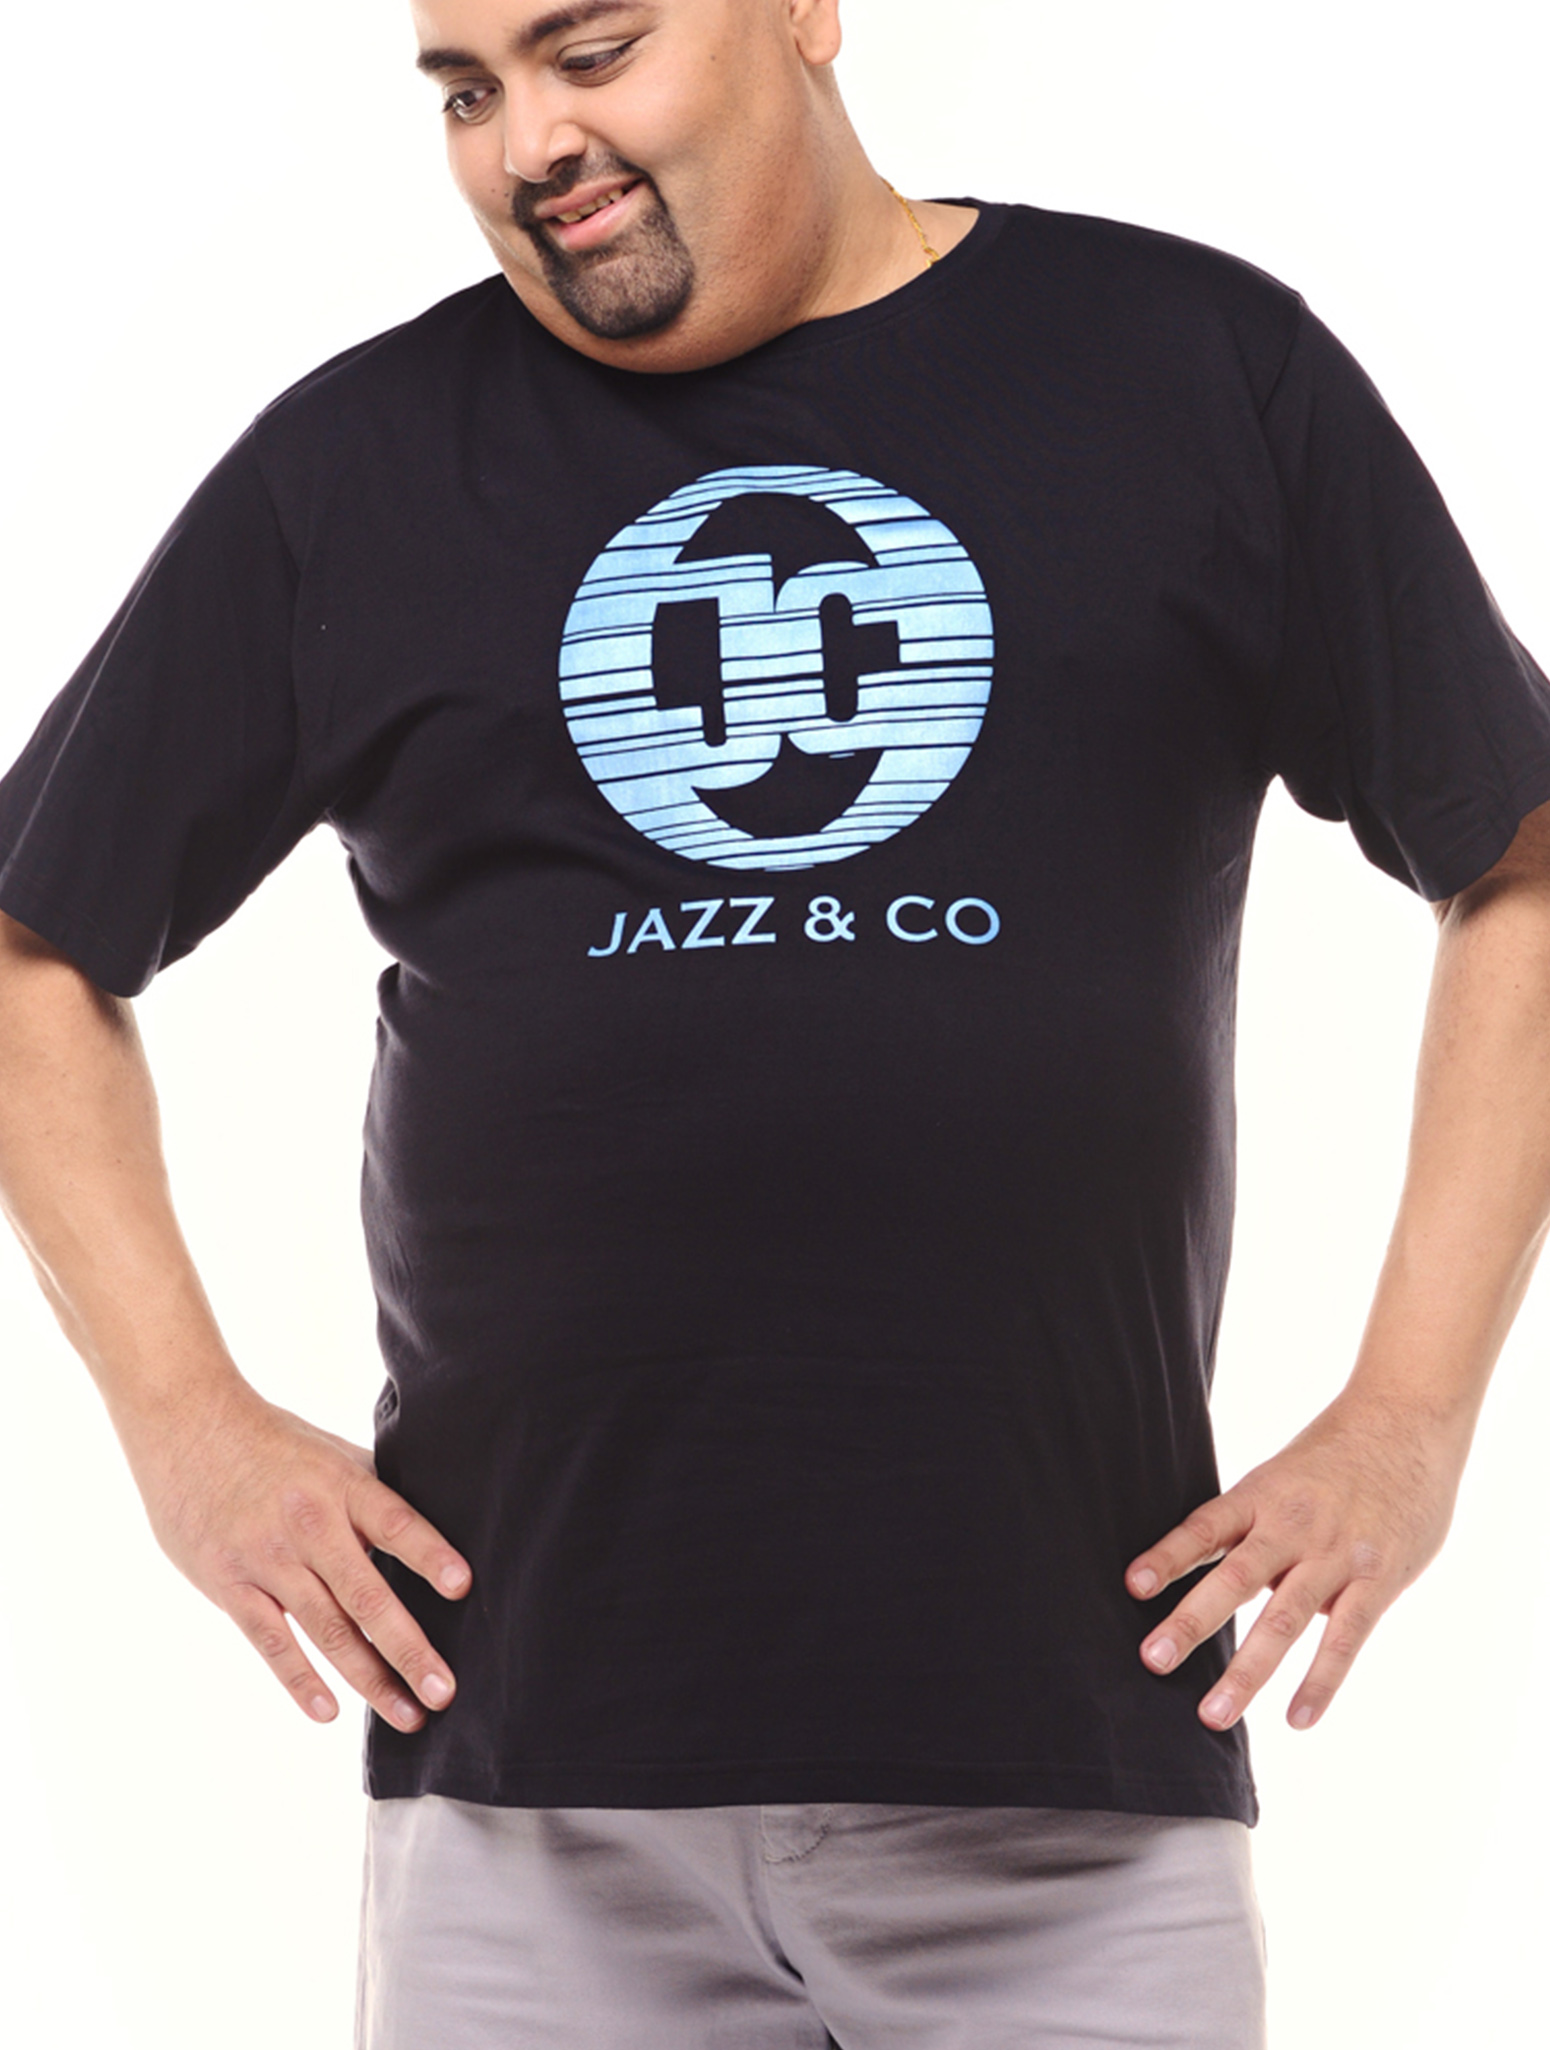 Jazz & Co Men Plus Size black short sleeve logo tee